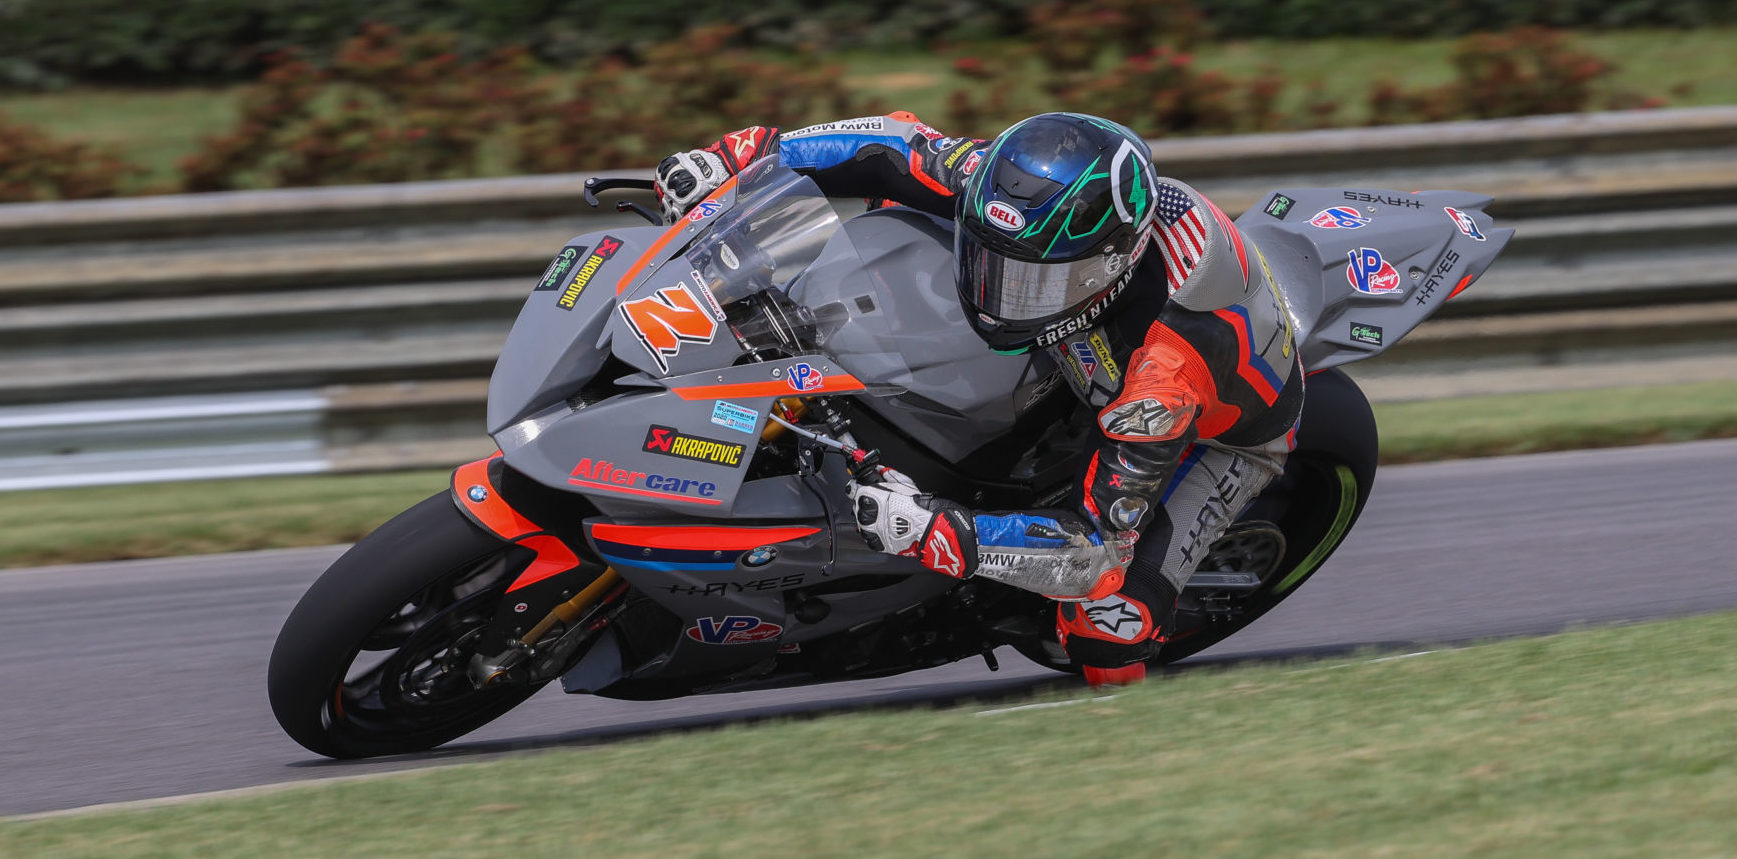 Josh Herrin (2) at speed at Barber Motorsports Park. Photo by Brian J. Nelson.